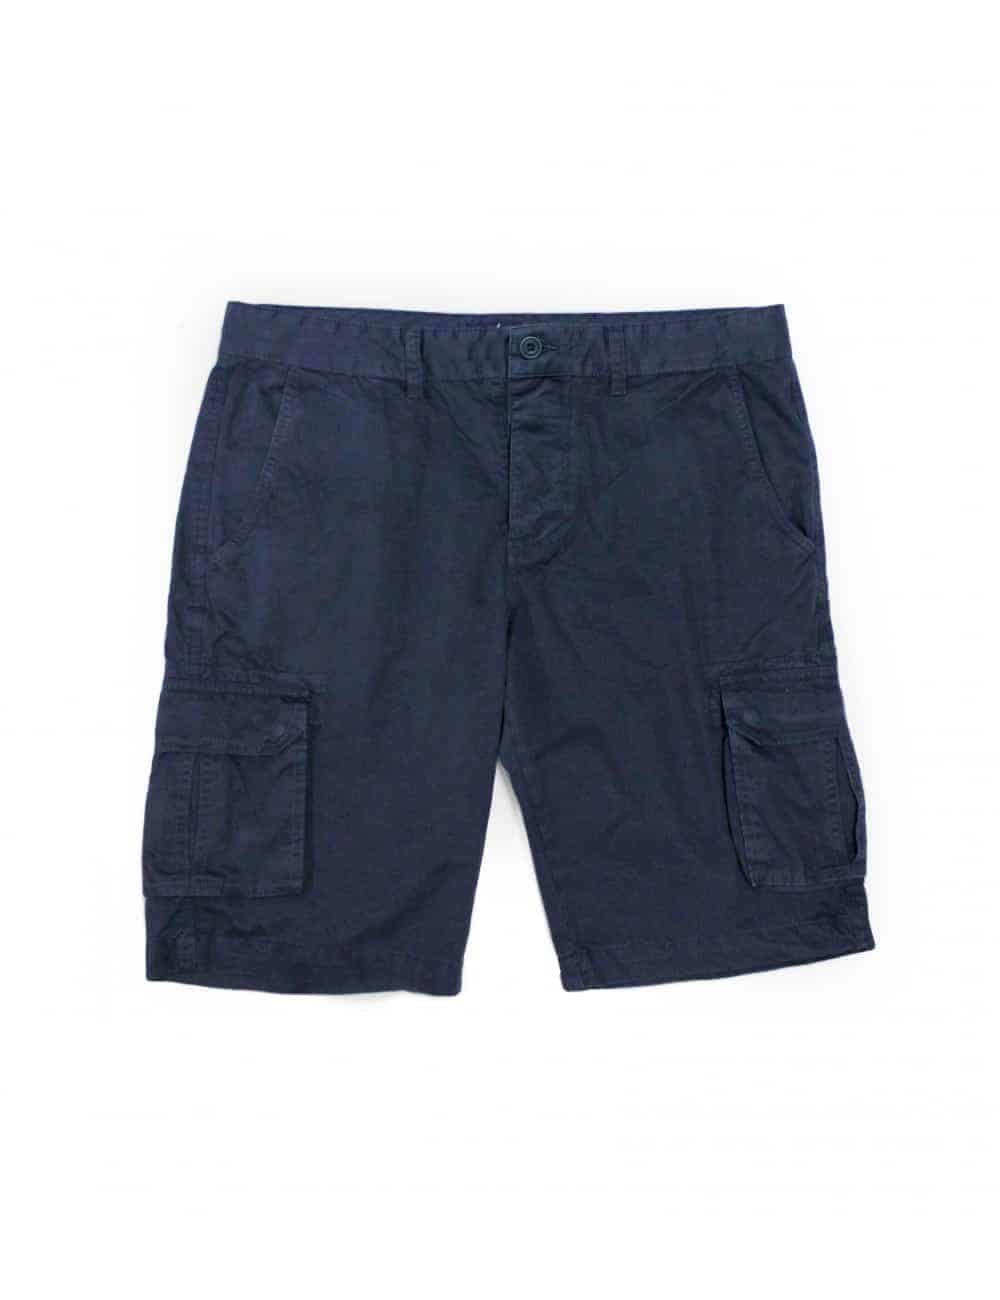 Solid Grey Cargo Shorts SB4.1